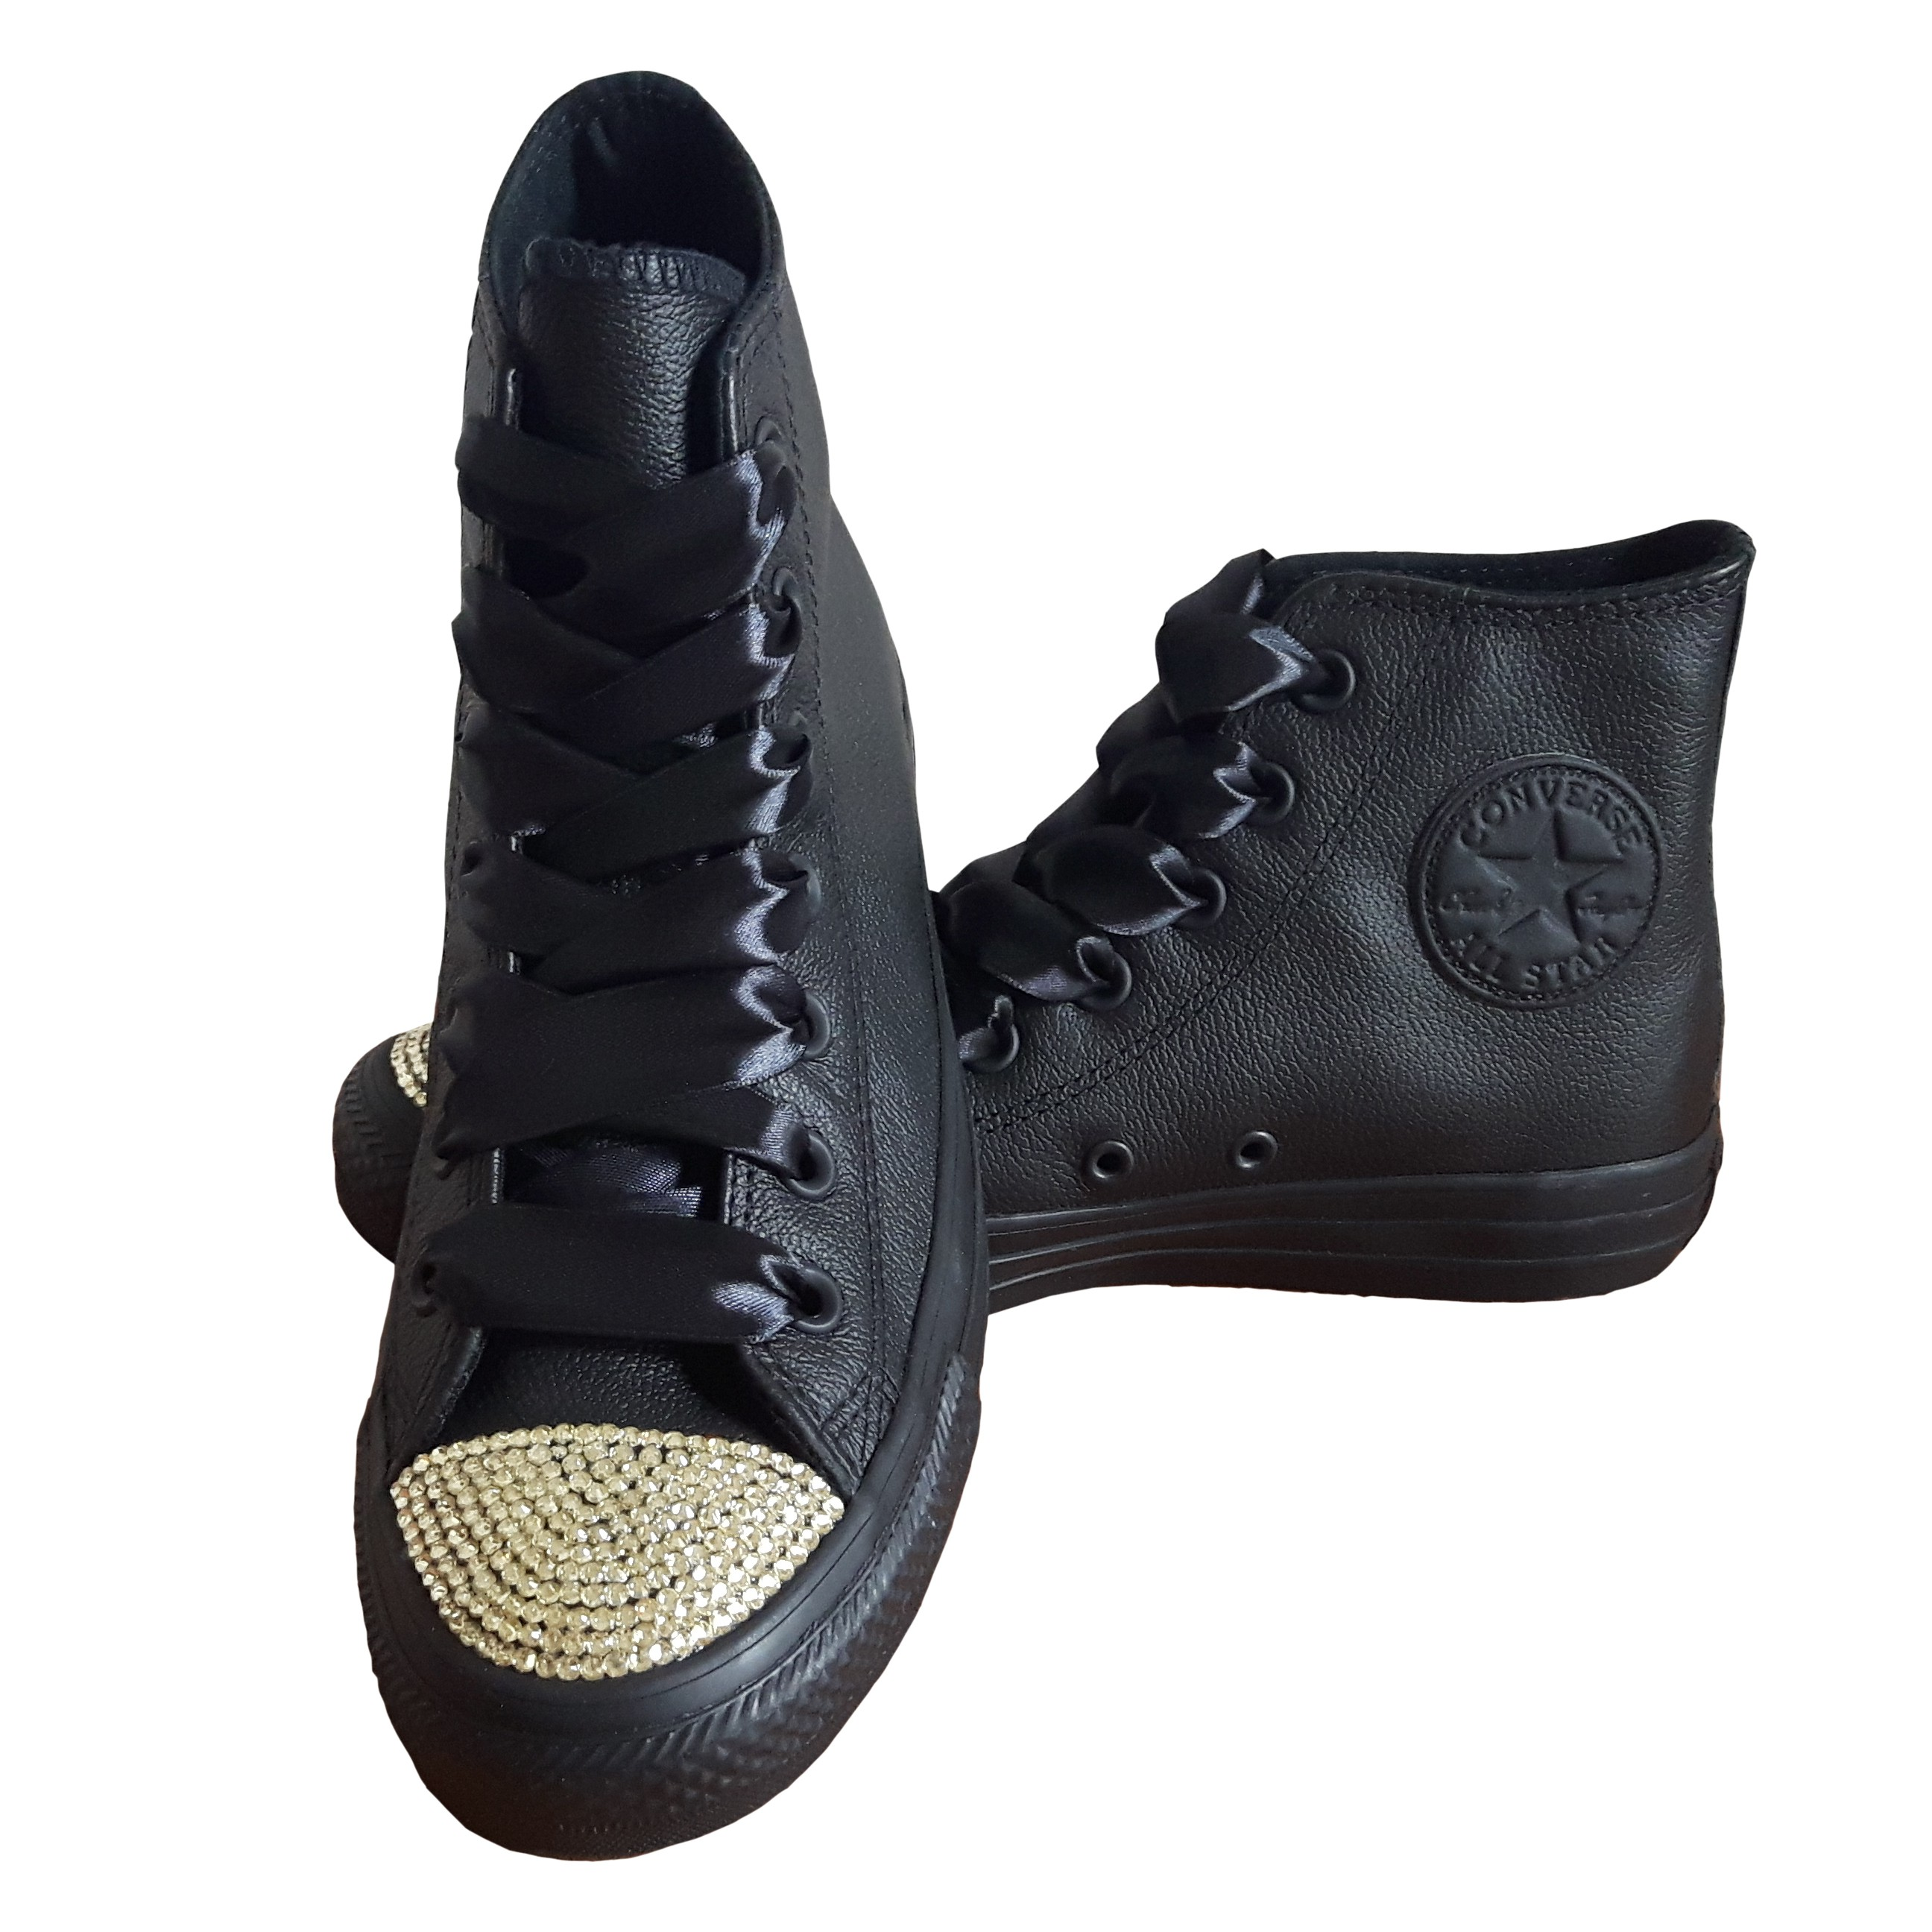 Converse Converse Chuck Taylor All Star 135251 SparkleS Leather Black/Gold - 41 C135251